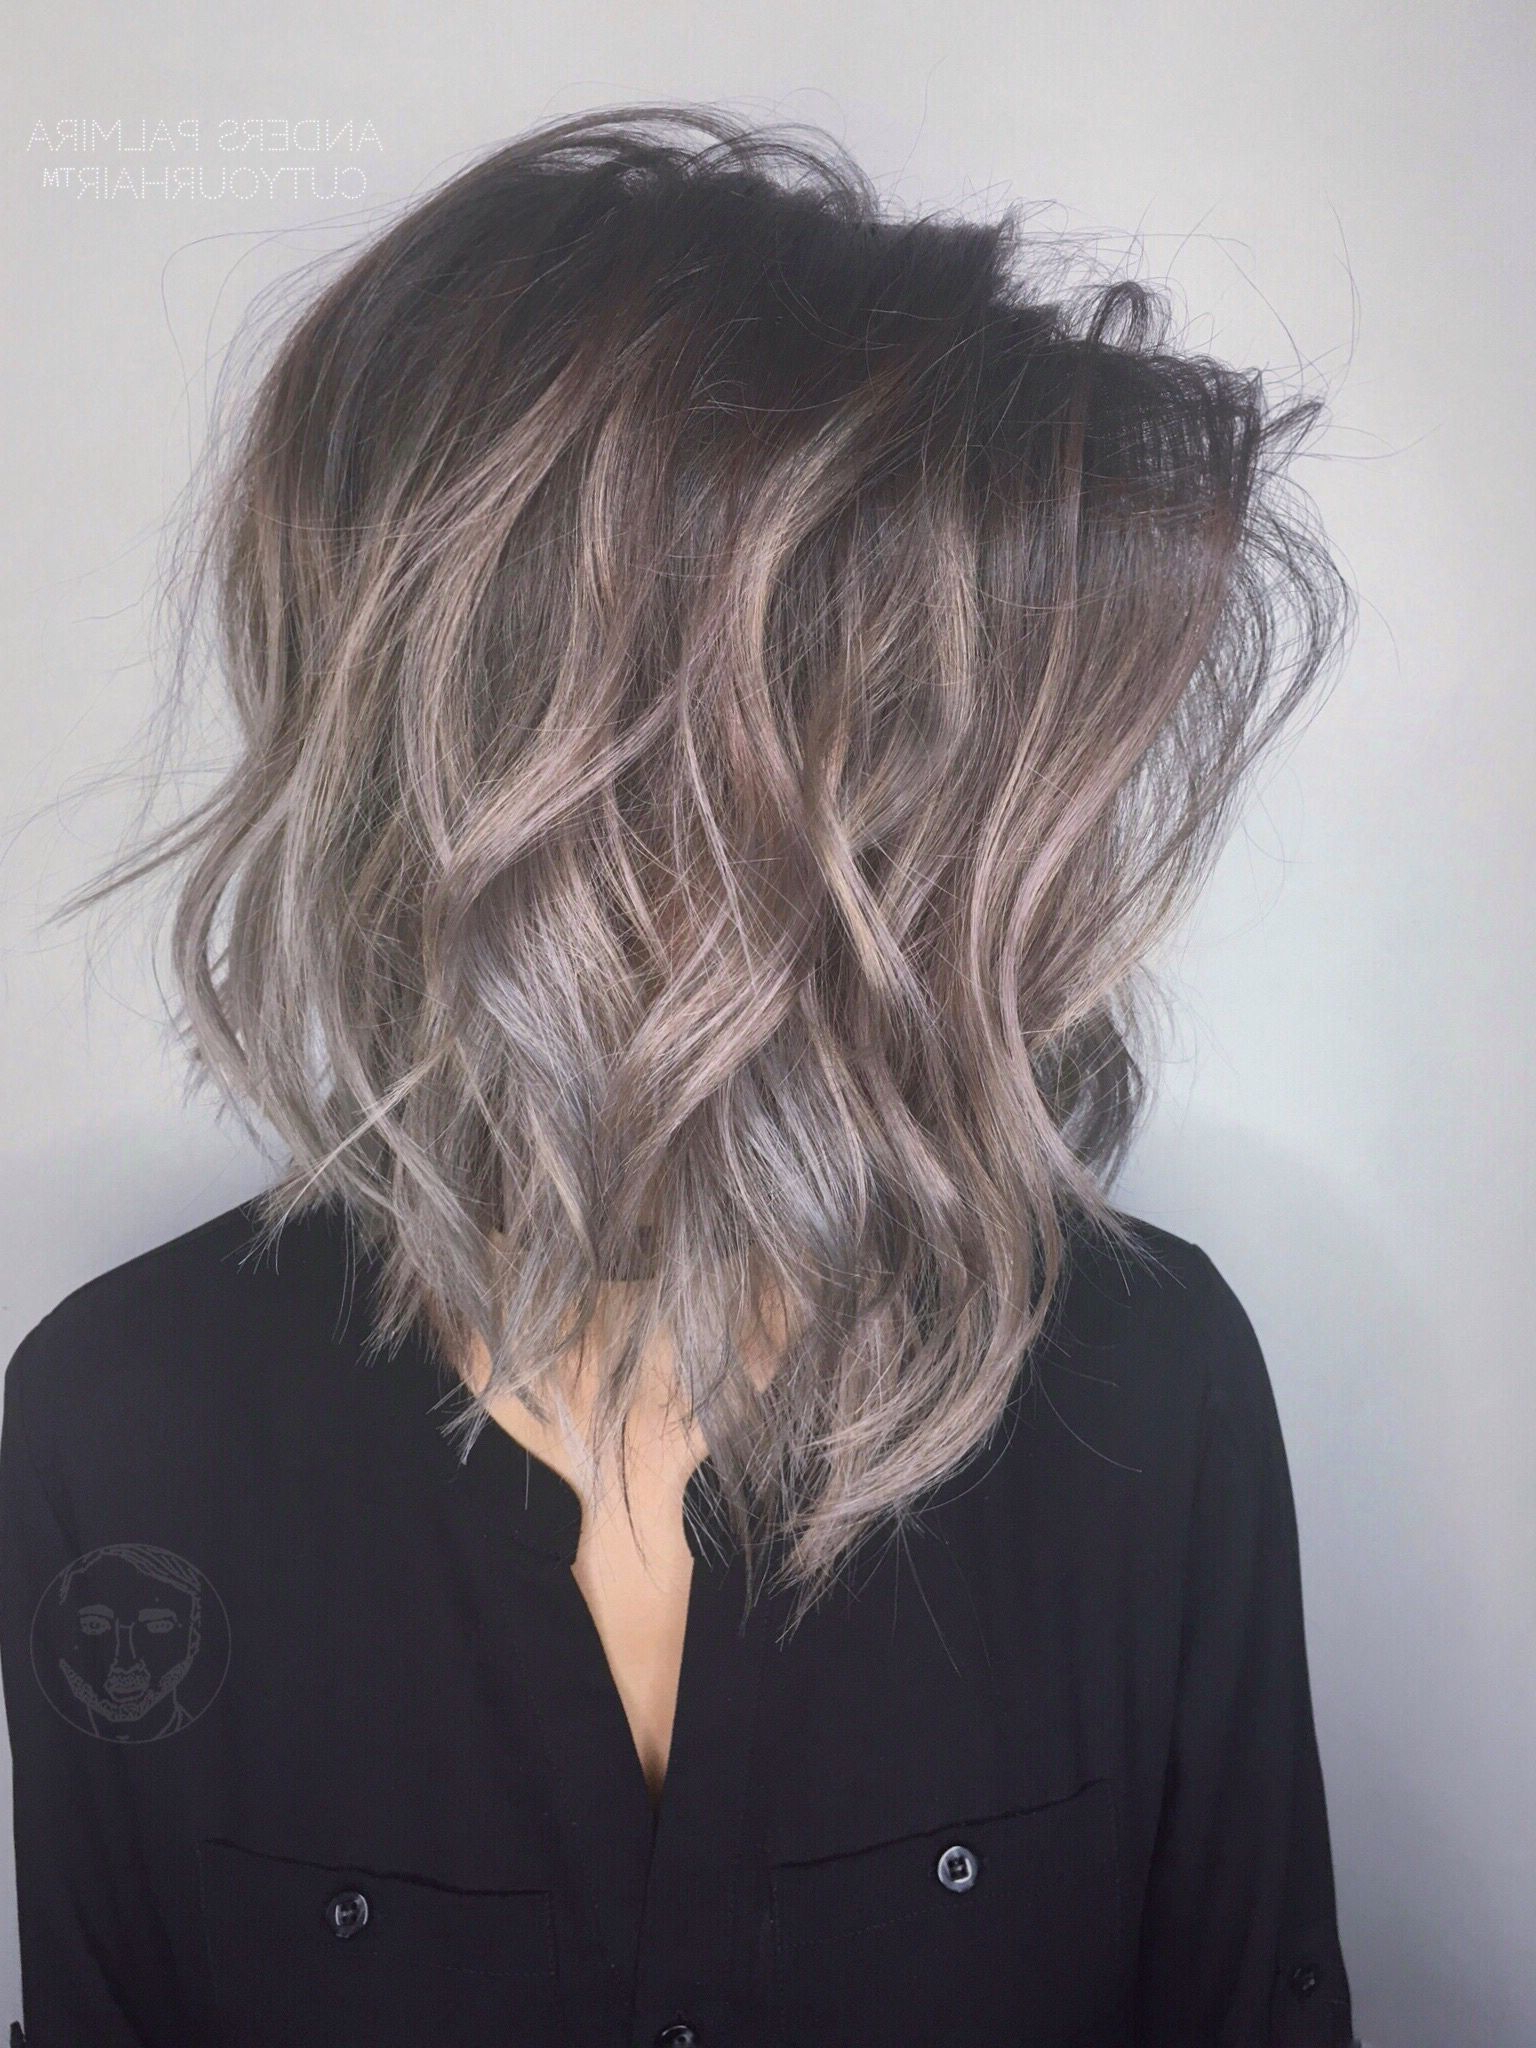 Aveda Wavy Long Blonde Bob Short Hair Beach Wave Medium Ideas Lob Within Short Wavy Blonde Balayage Bob Hairstyles (View 15 of 20)